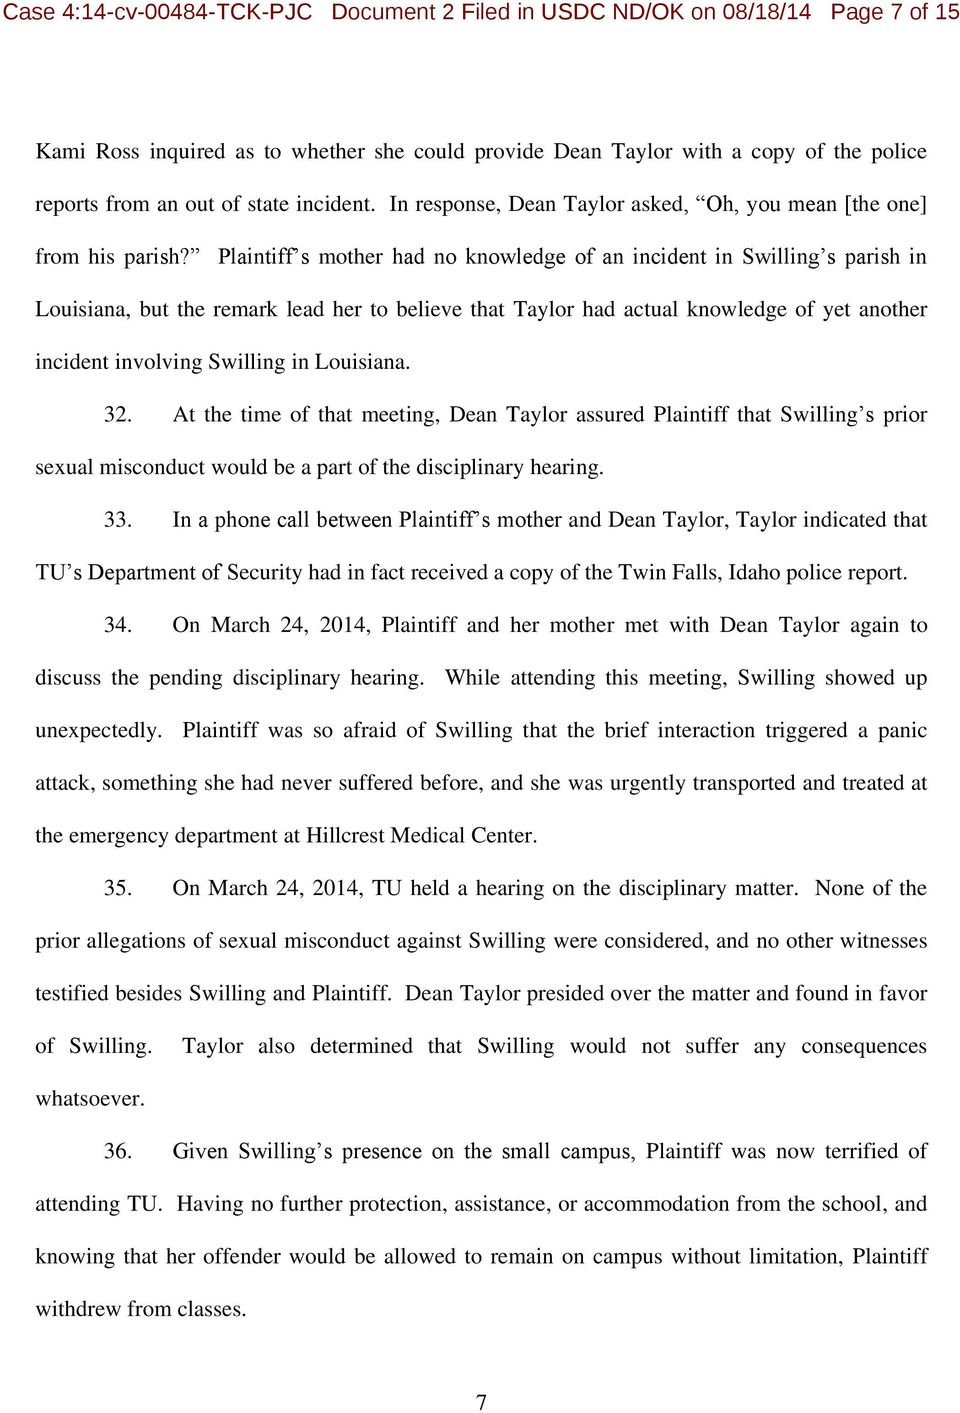 Plaintiff s mother had no knowledge of an incident in Swilling s parish in Louisiana, but the remark lead her to believe that Taylor had actual knowledge of yet another incident involving Swilling in